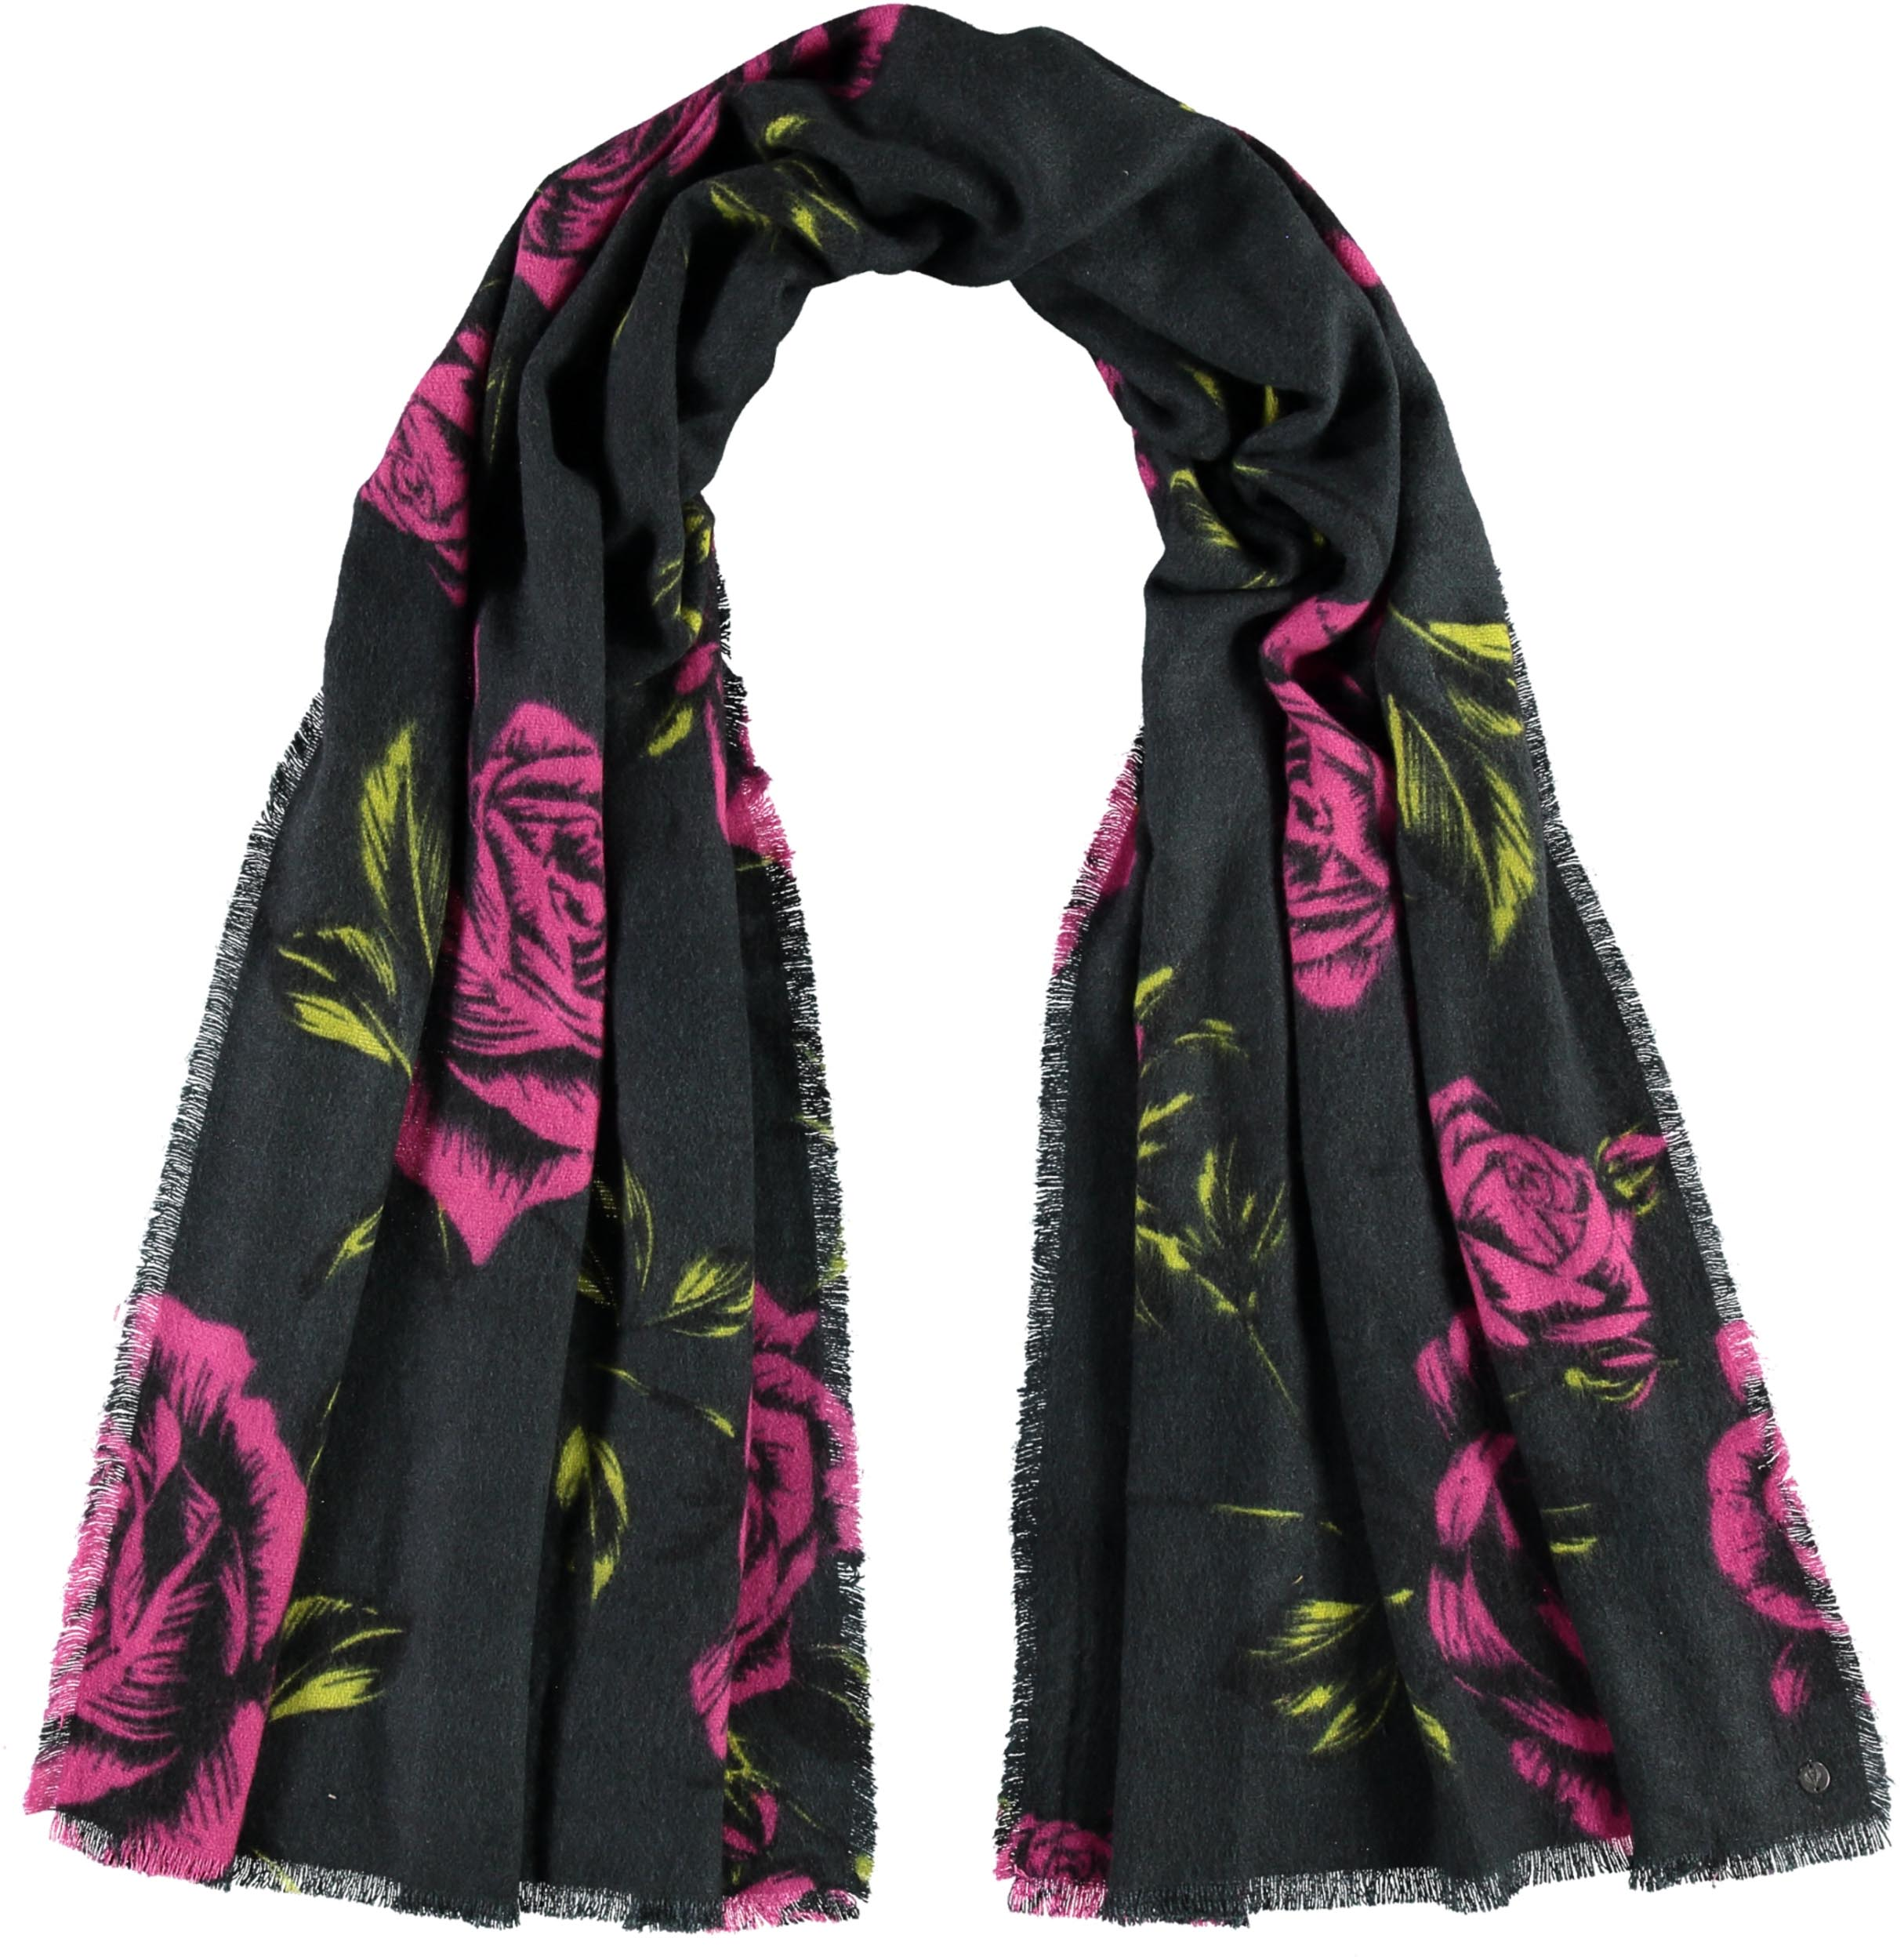 Rose Bouquet Printed Acrylic Wrap Scarf